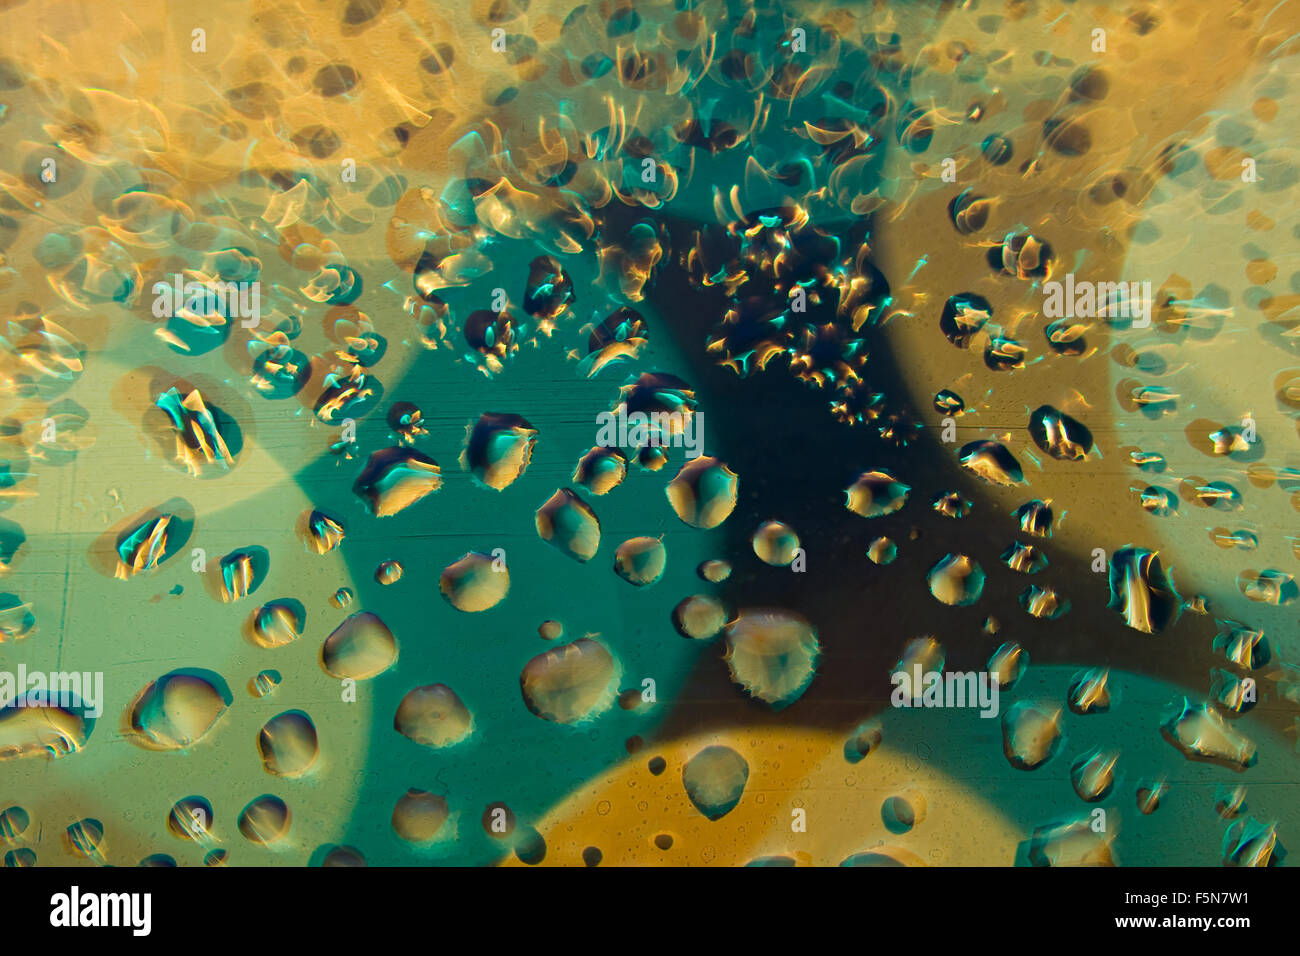 Abstract and psychedelic color background with water drops. - Stock Image